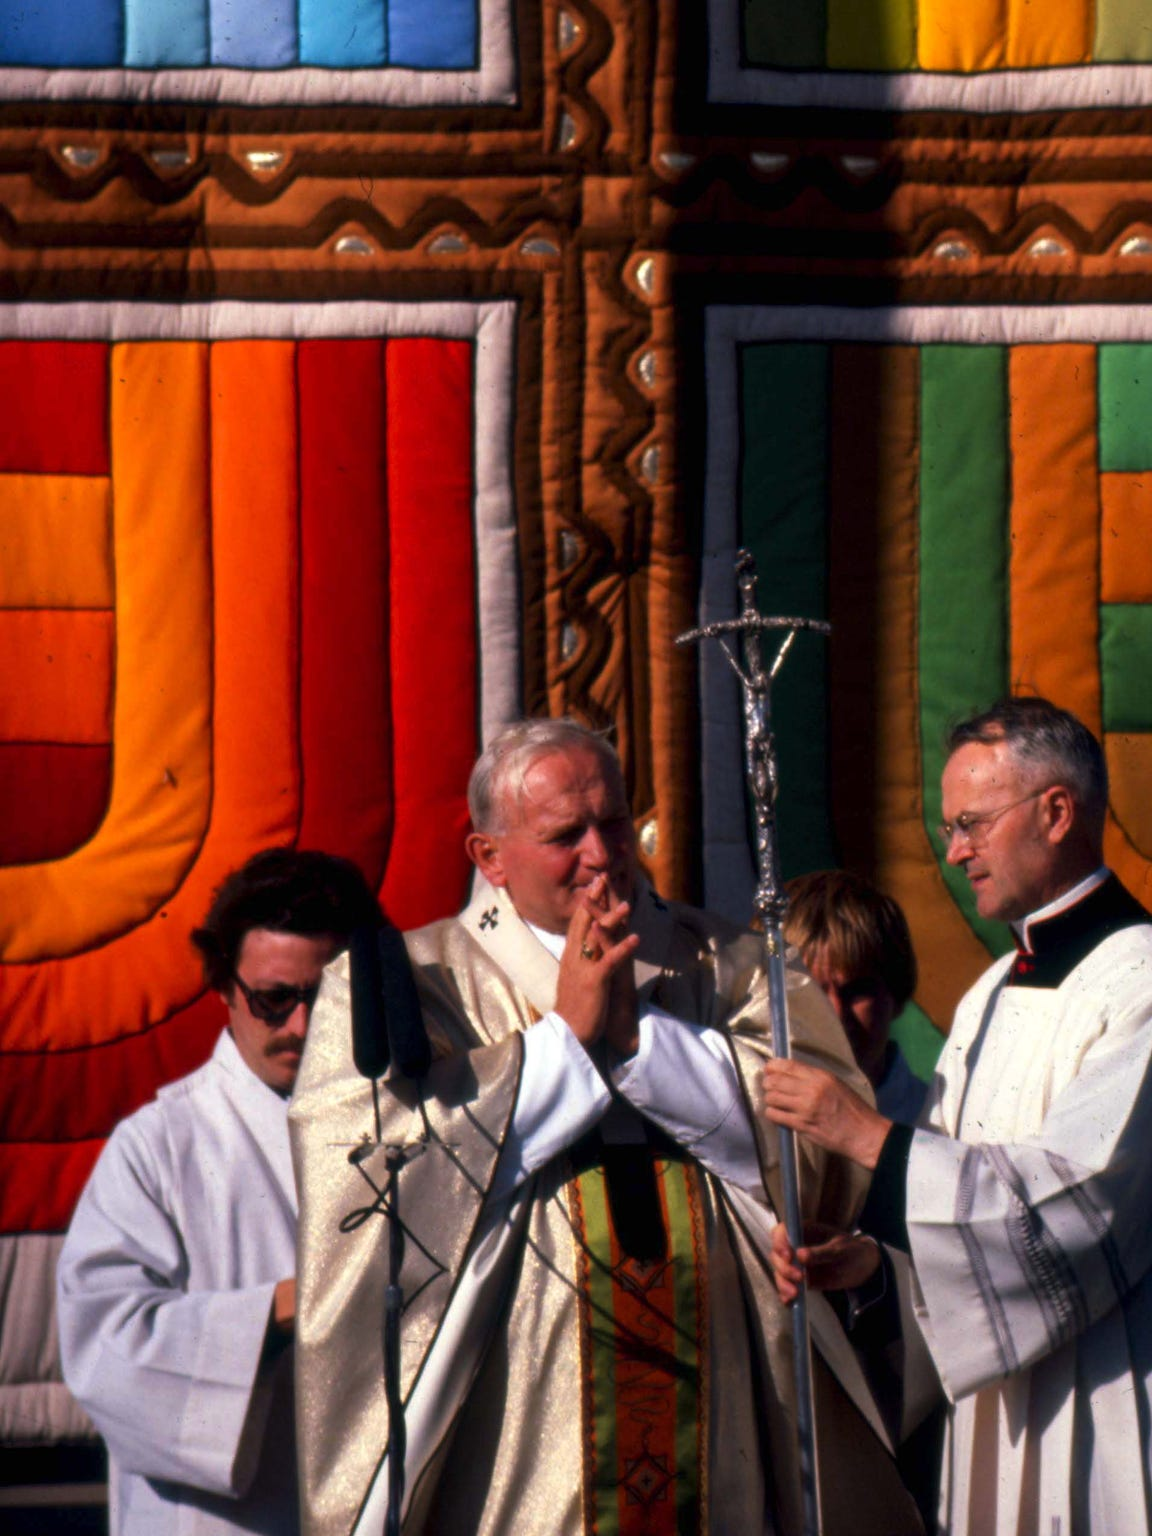 Pope John Paul II holds Mass during a visit to Living History Farms October 4, 1979.